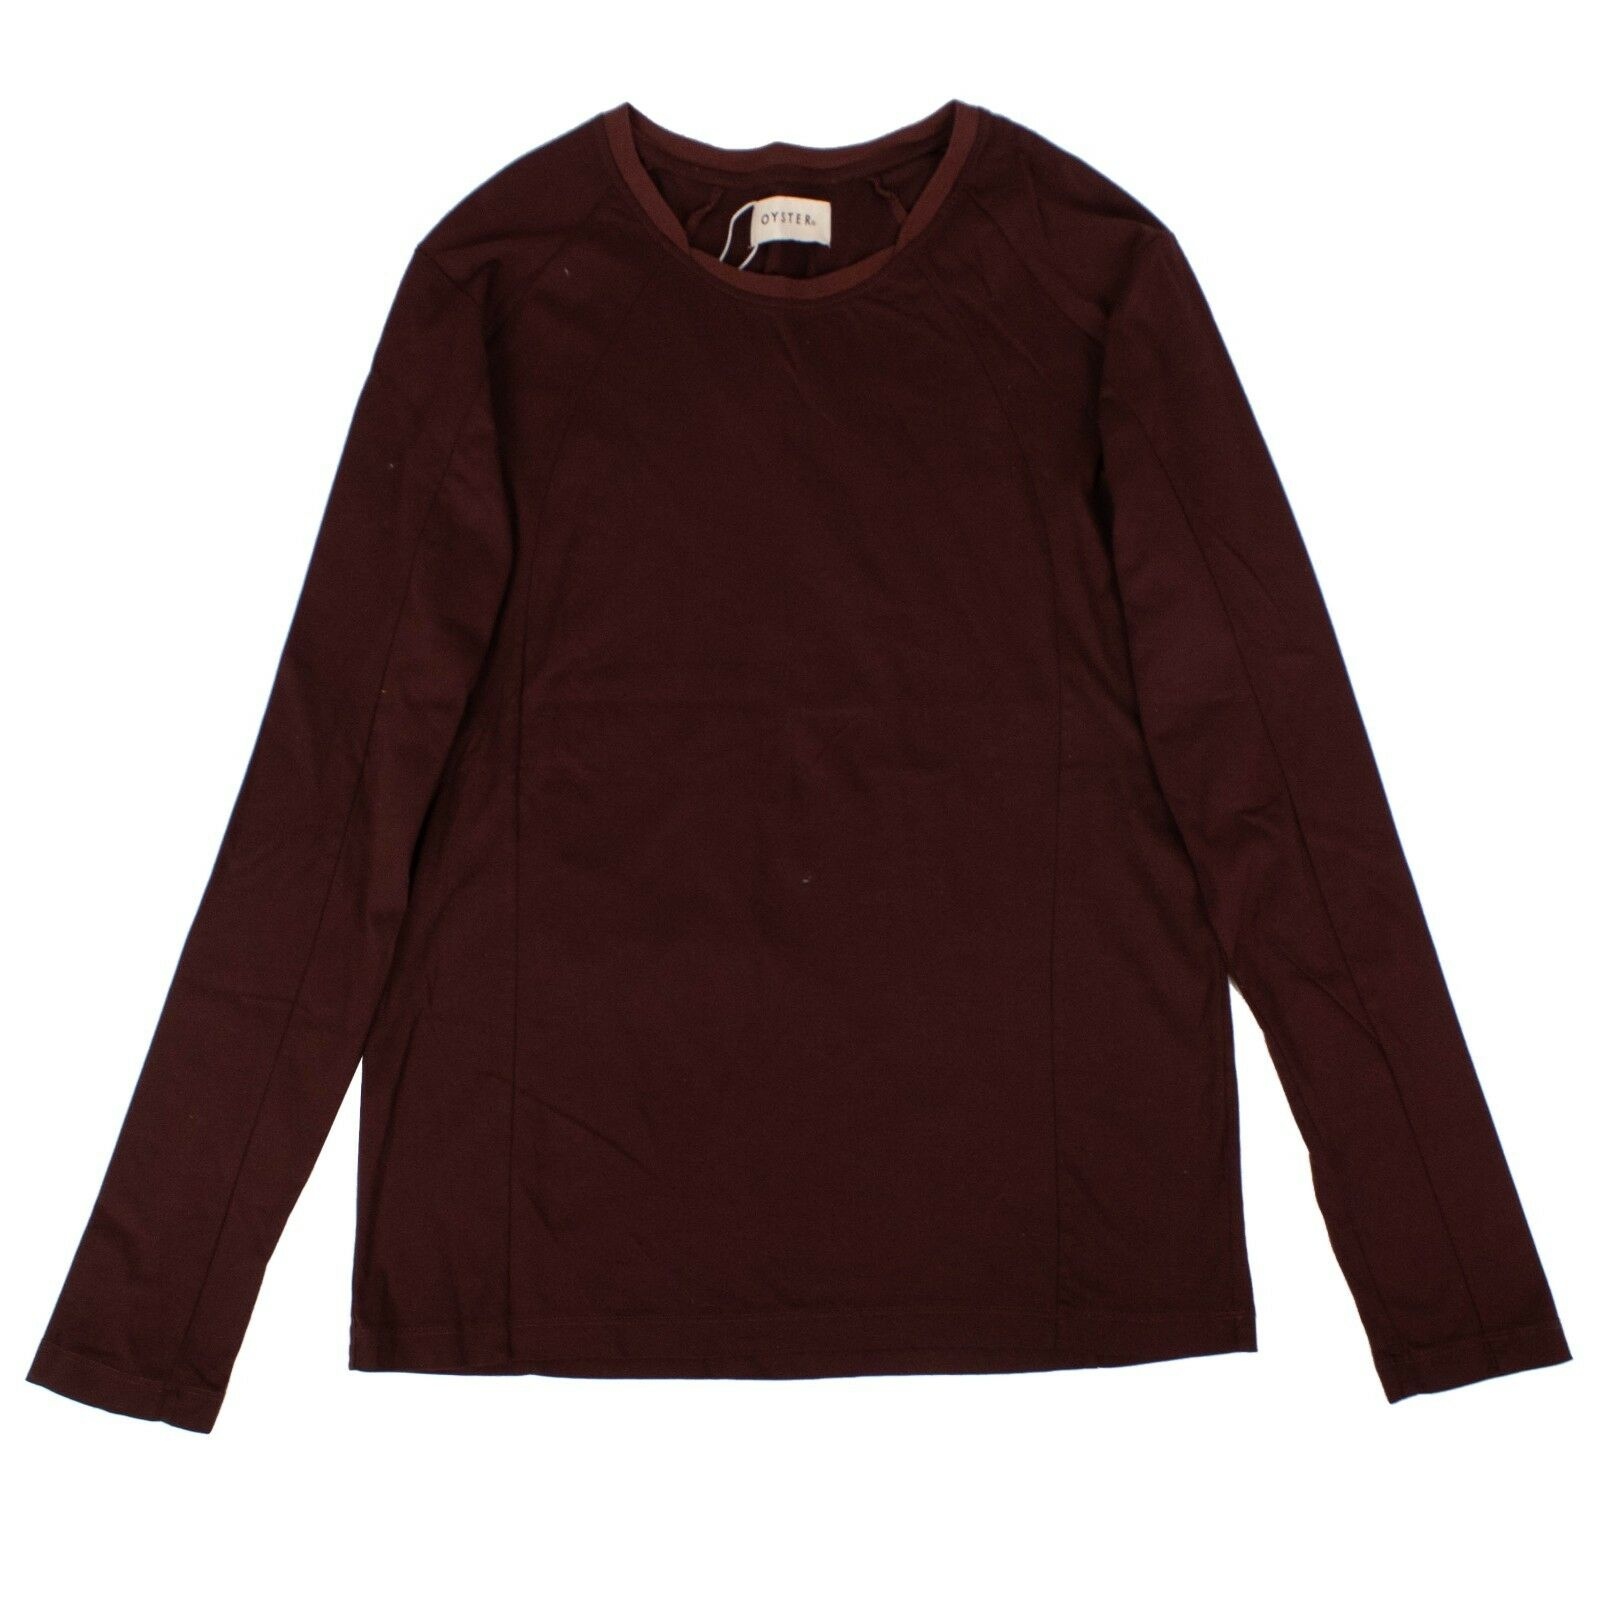 NWT OYSTER HOLDINGS Maroon BNC Long Sleeve Knit Shirt Size M